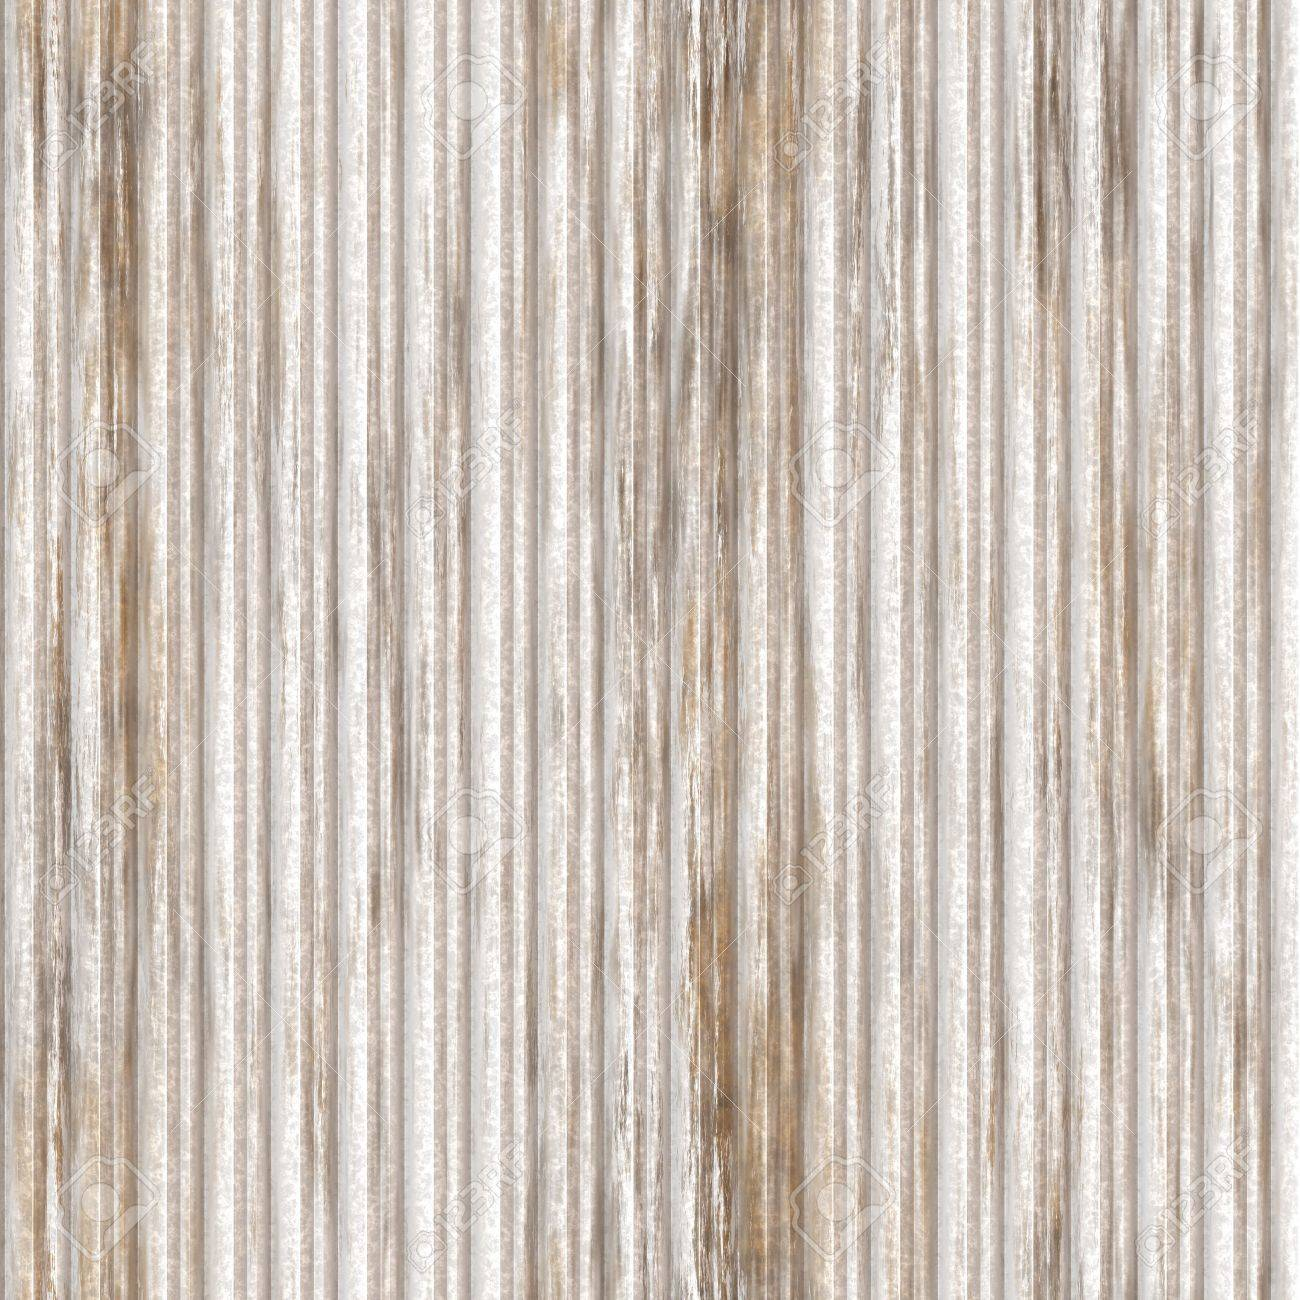 Corrugated metal ridged surface with corrosion seamless texture Stock Photo    6233494. Corrugated Metal Ridged Surface With Corrosion Seamless Texture